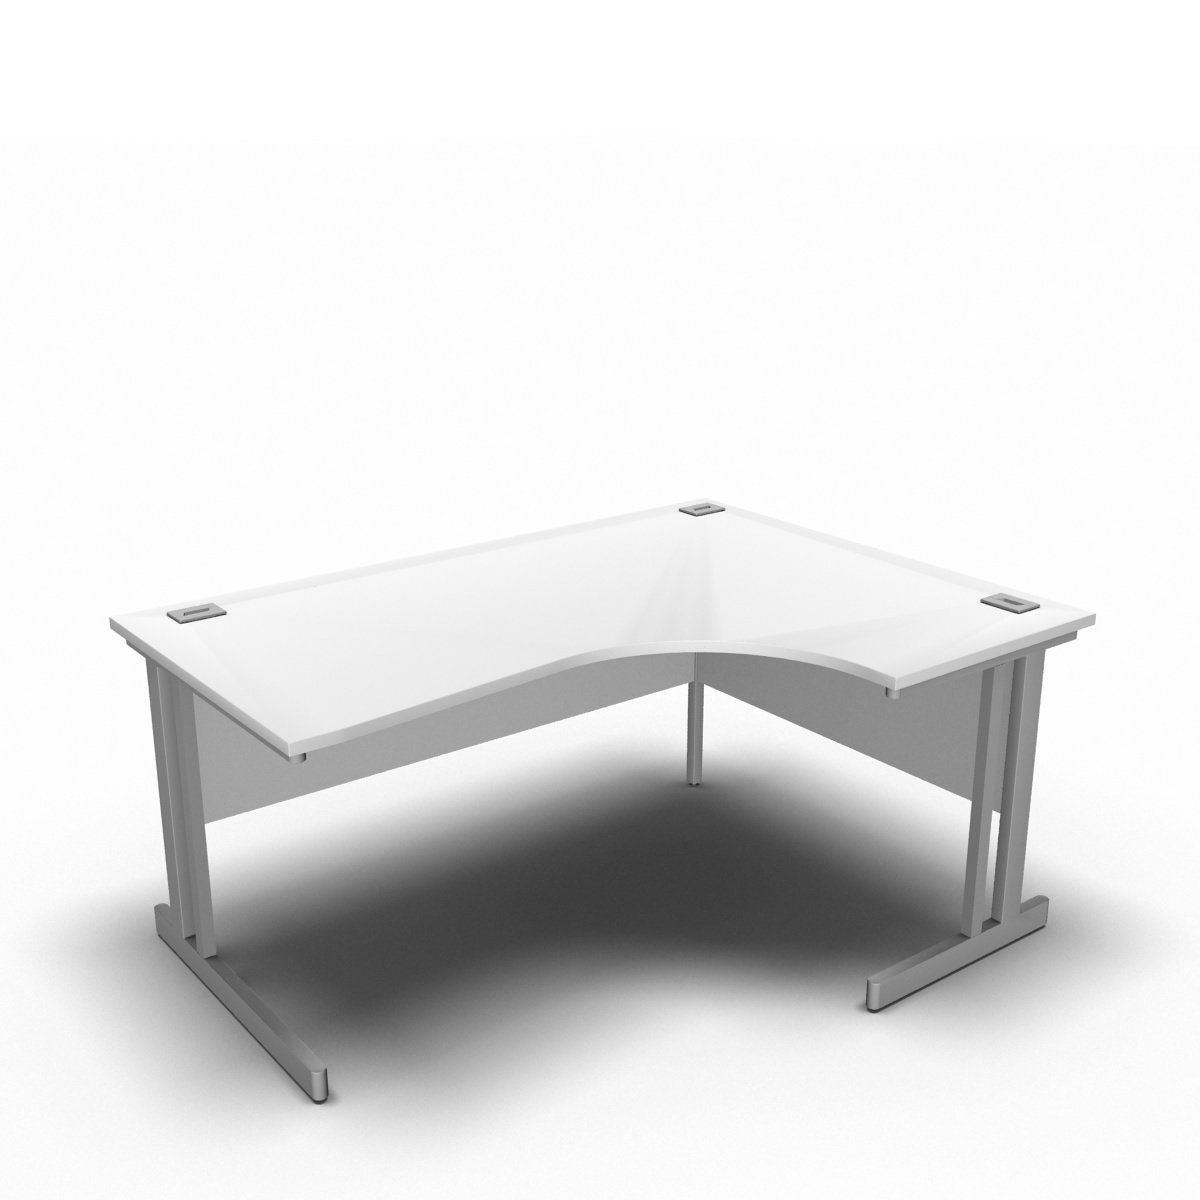 Desk 1600 x 1200 x 800 x 600mm / Right / White Synergy Crescent Desks